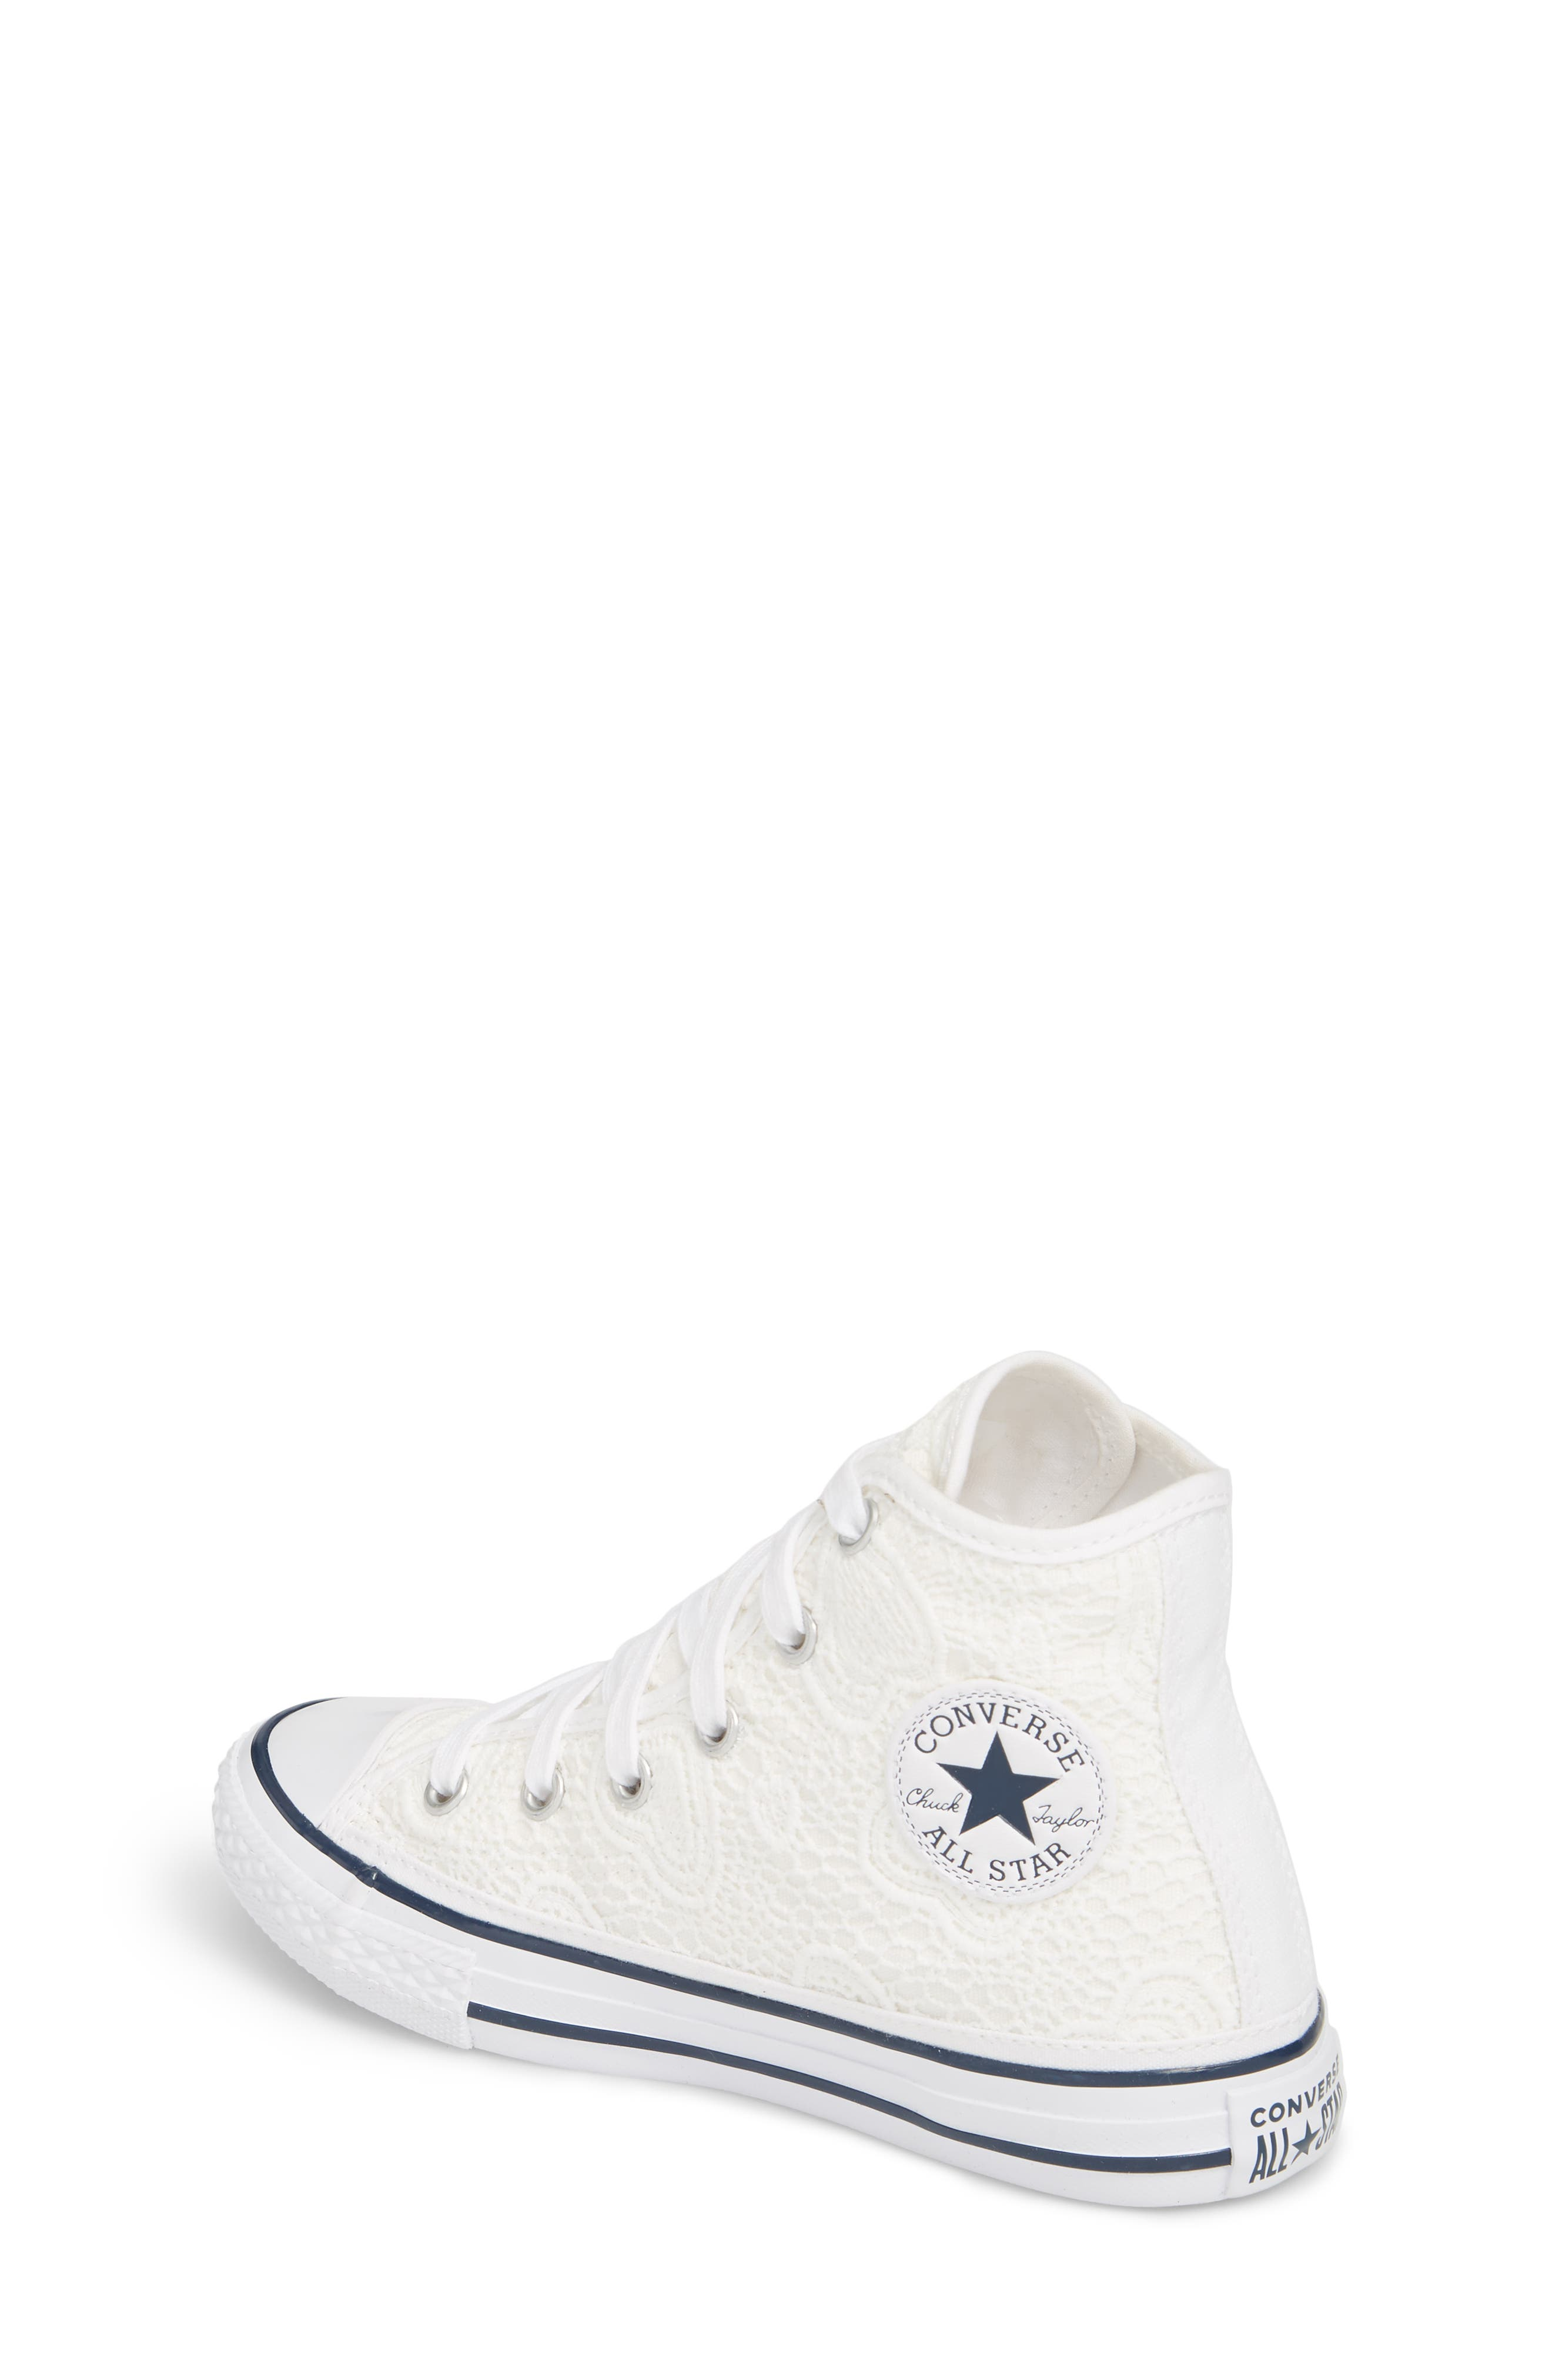 Chuck Taylor<sup>®</sup> All Star<sup>®</sup> Crochet High Top Sneaker,                             Alternate thumbnail 2, color,                             102